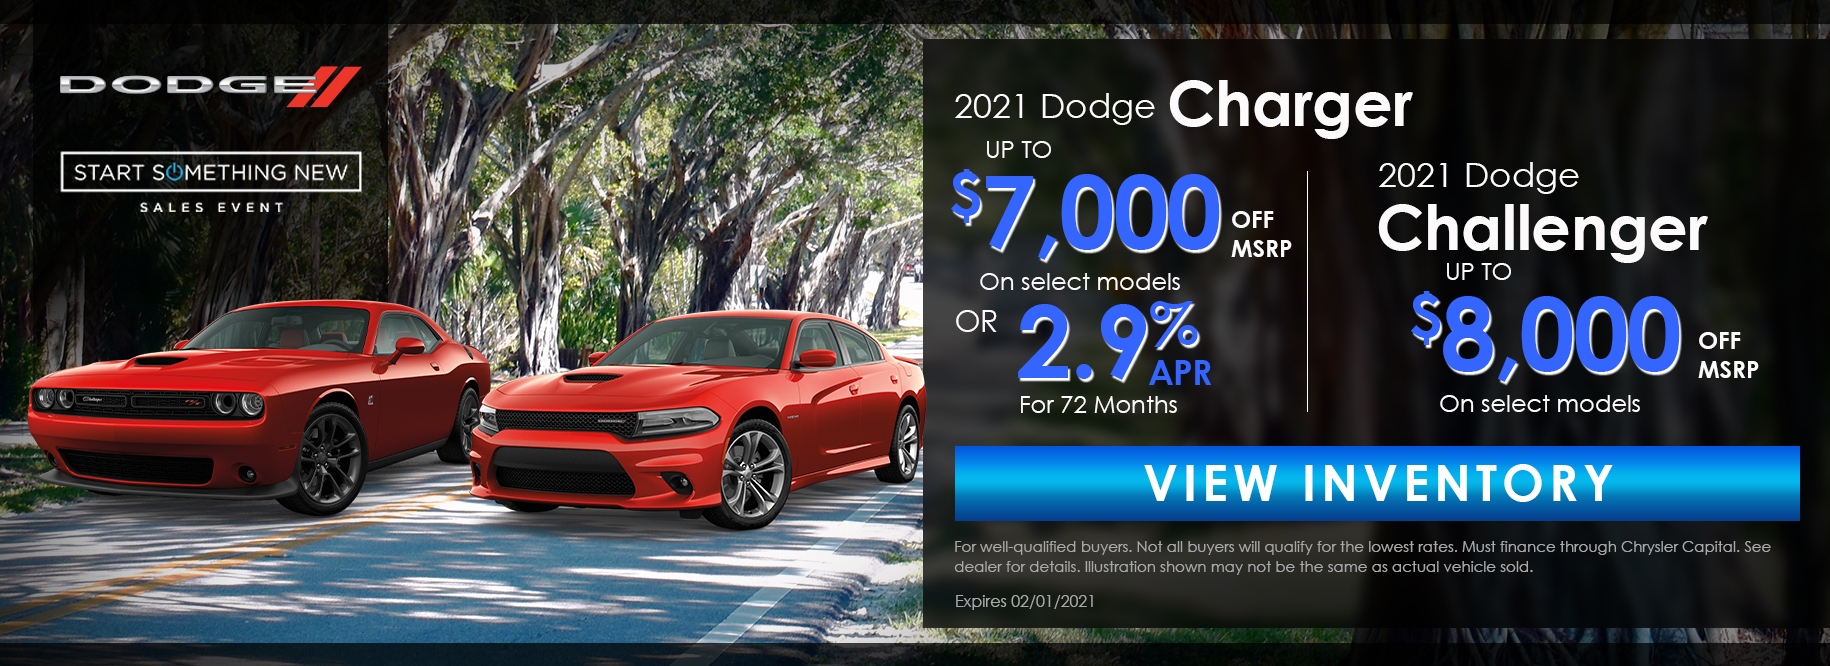 2021-Challenger-Charger